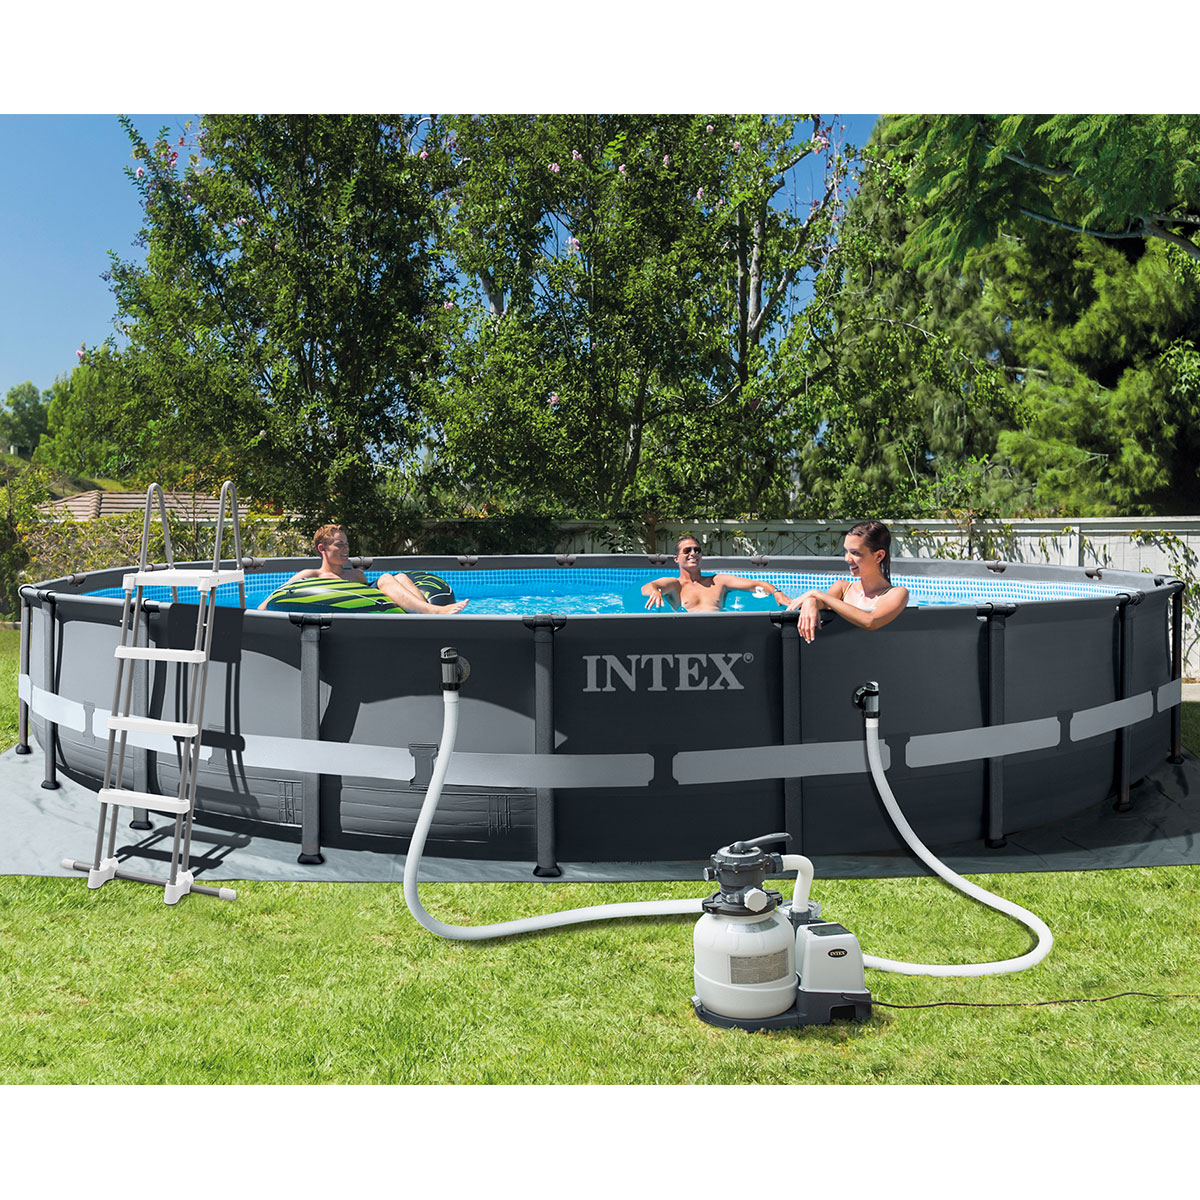 "Intex 20ft (6.1m) x 48"" (1.2m) XTR Round Ultra Frame Pool with Pump, Ladder and Accessories"